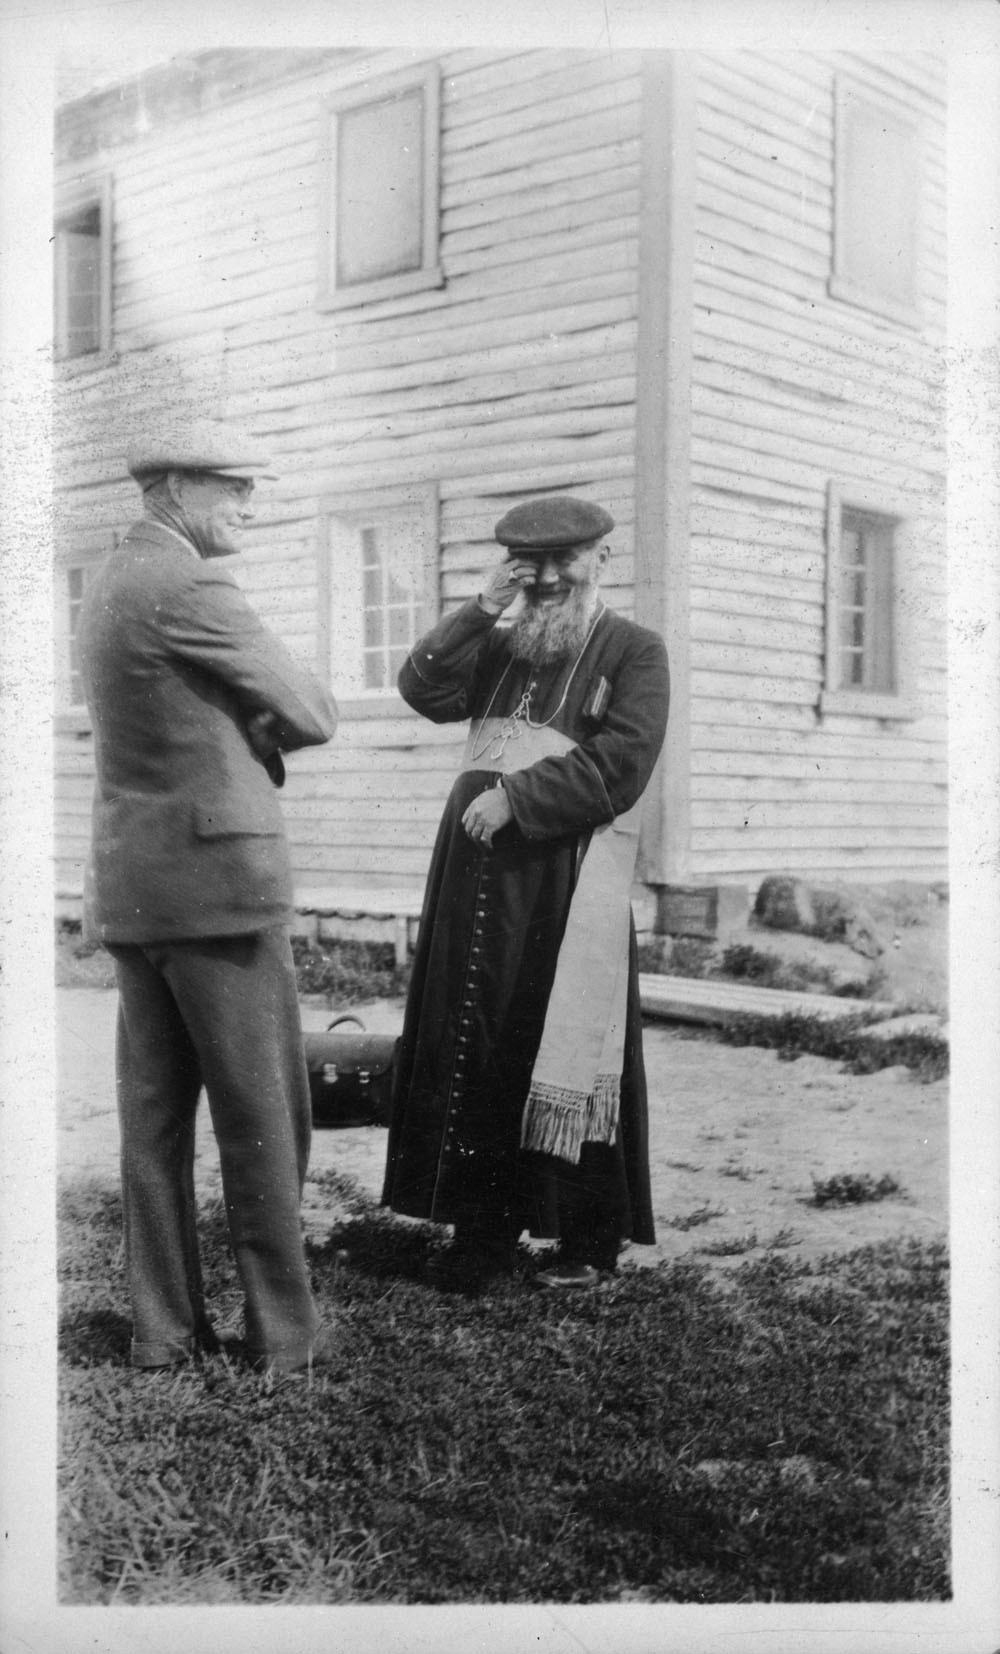 """Bishop Gabriel Breynat, known as the """"flying bishop,"""" oversaw the vast Mackenzie Diocese. He was well-known and trusted by Indigenous communities in the North. (Library and Archives Canada)"""